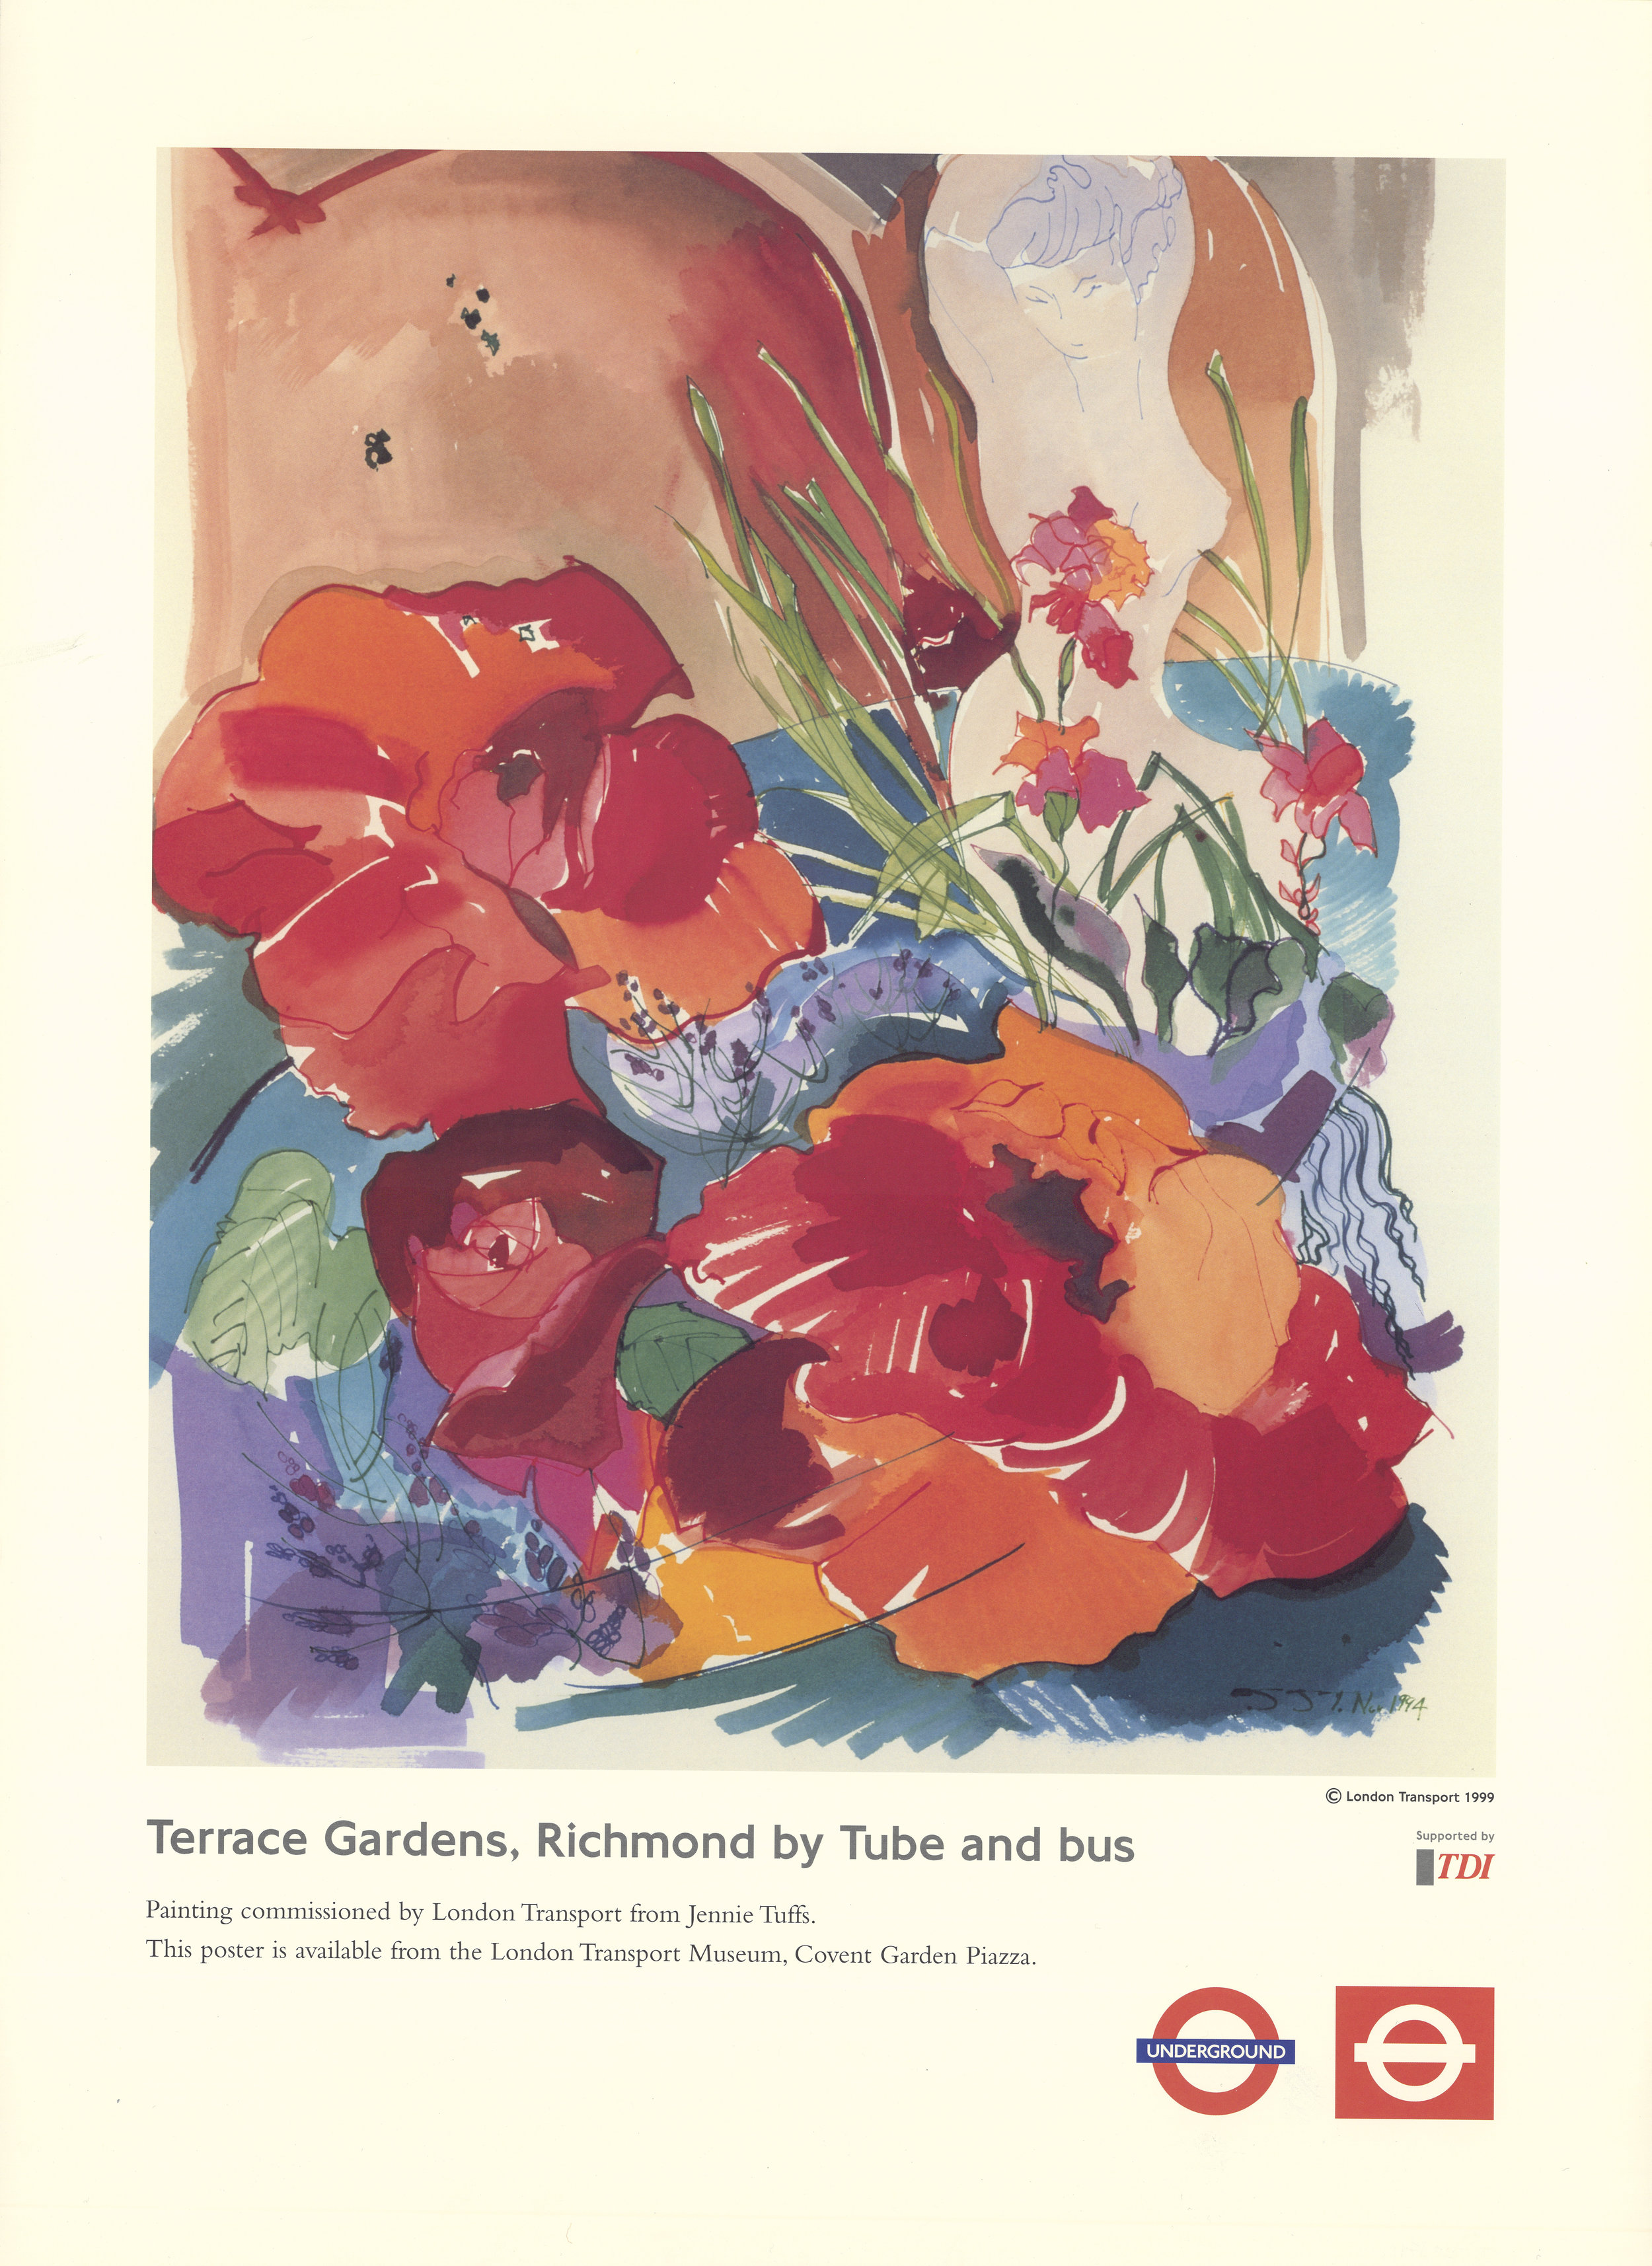 Terrace Gardens, Richmond by Tube and bus 1995